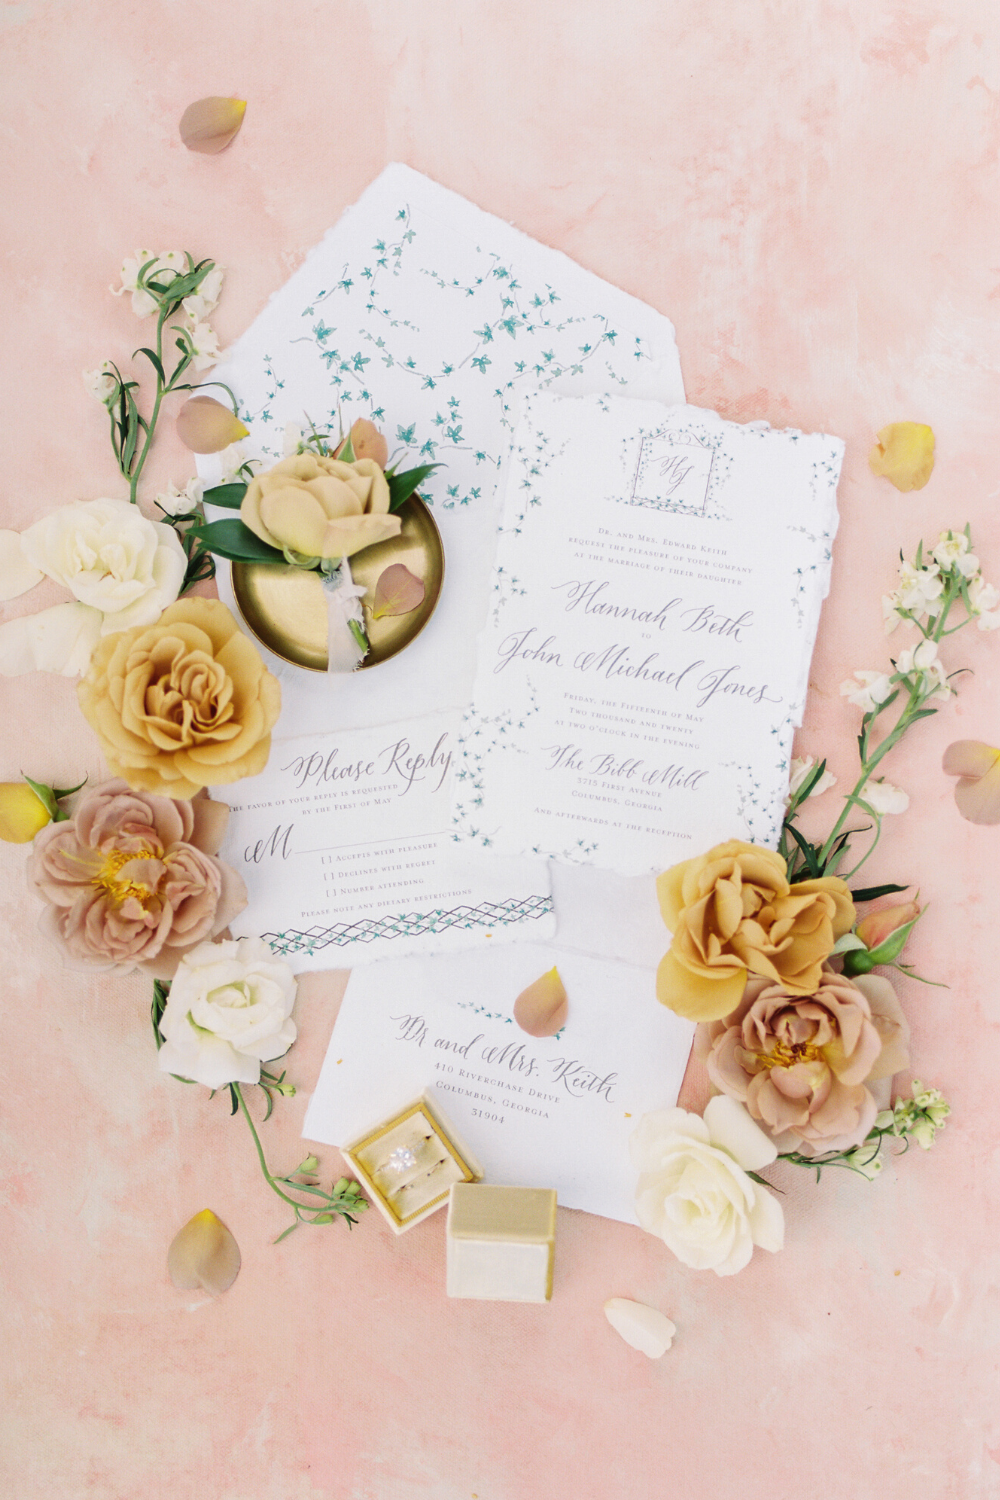 Vibrant Feminine Wedding Inspiration For Every Modern Bride In 2020 Wedding Invitations Stationery Feminine Wedding Wedding Inspiration